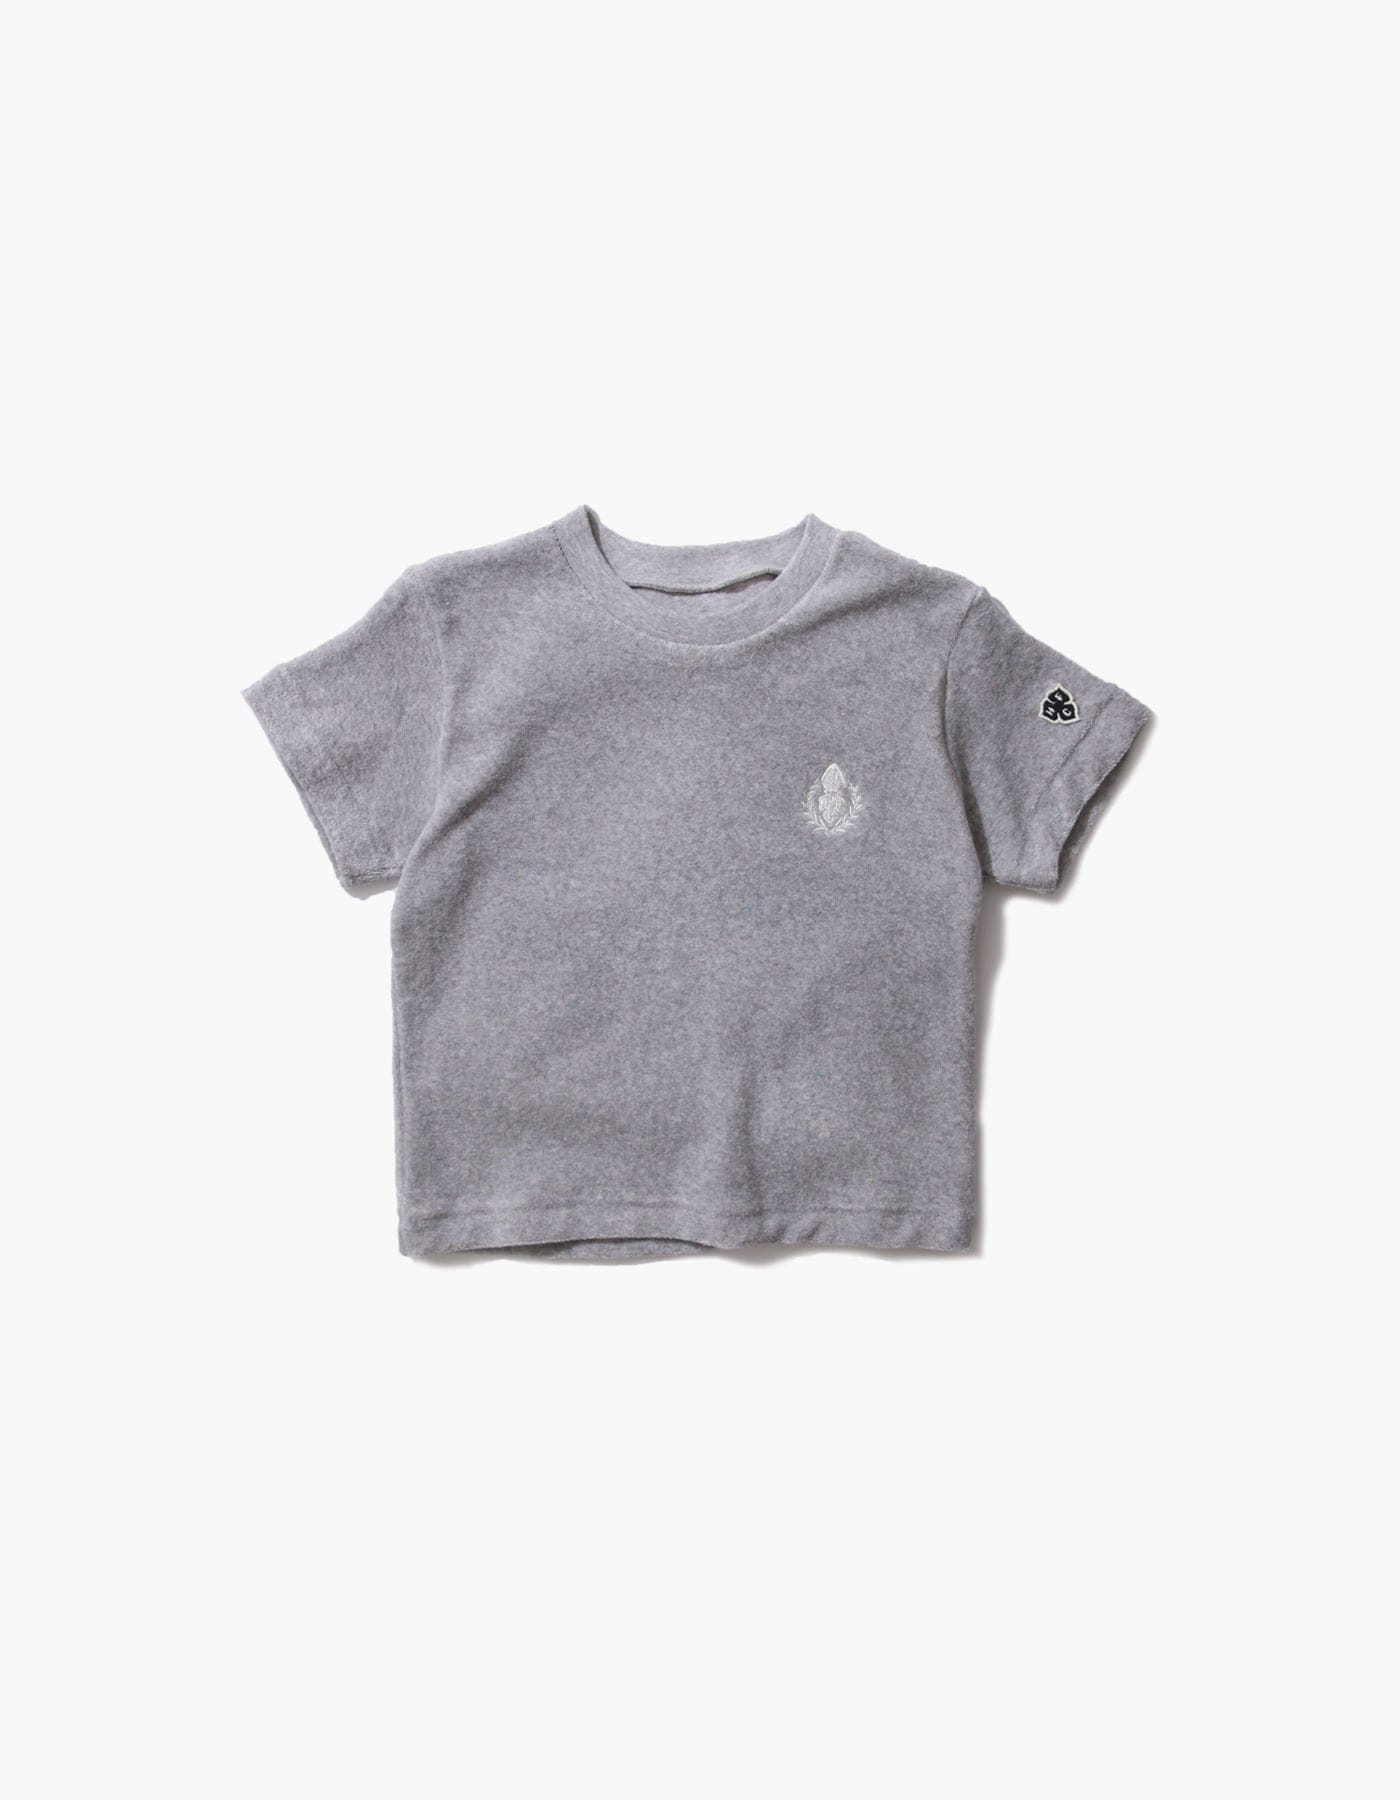 HFC CREST KIDS TOWEL T-SHIRTS / M.GREY(5%)